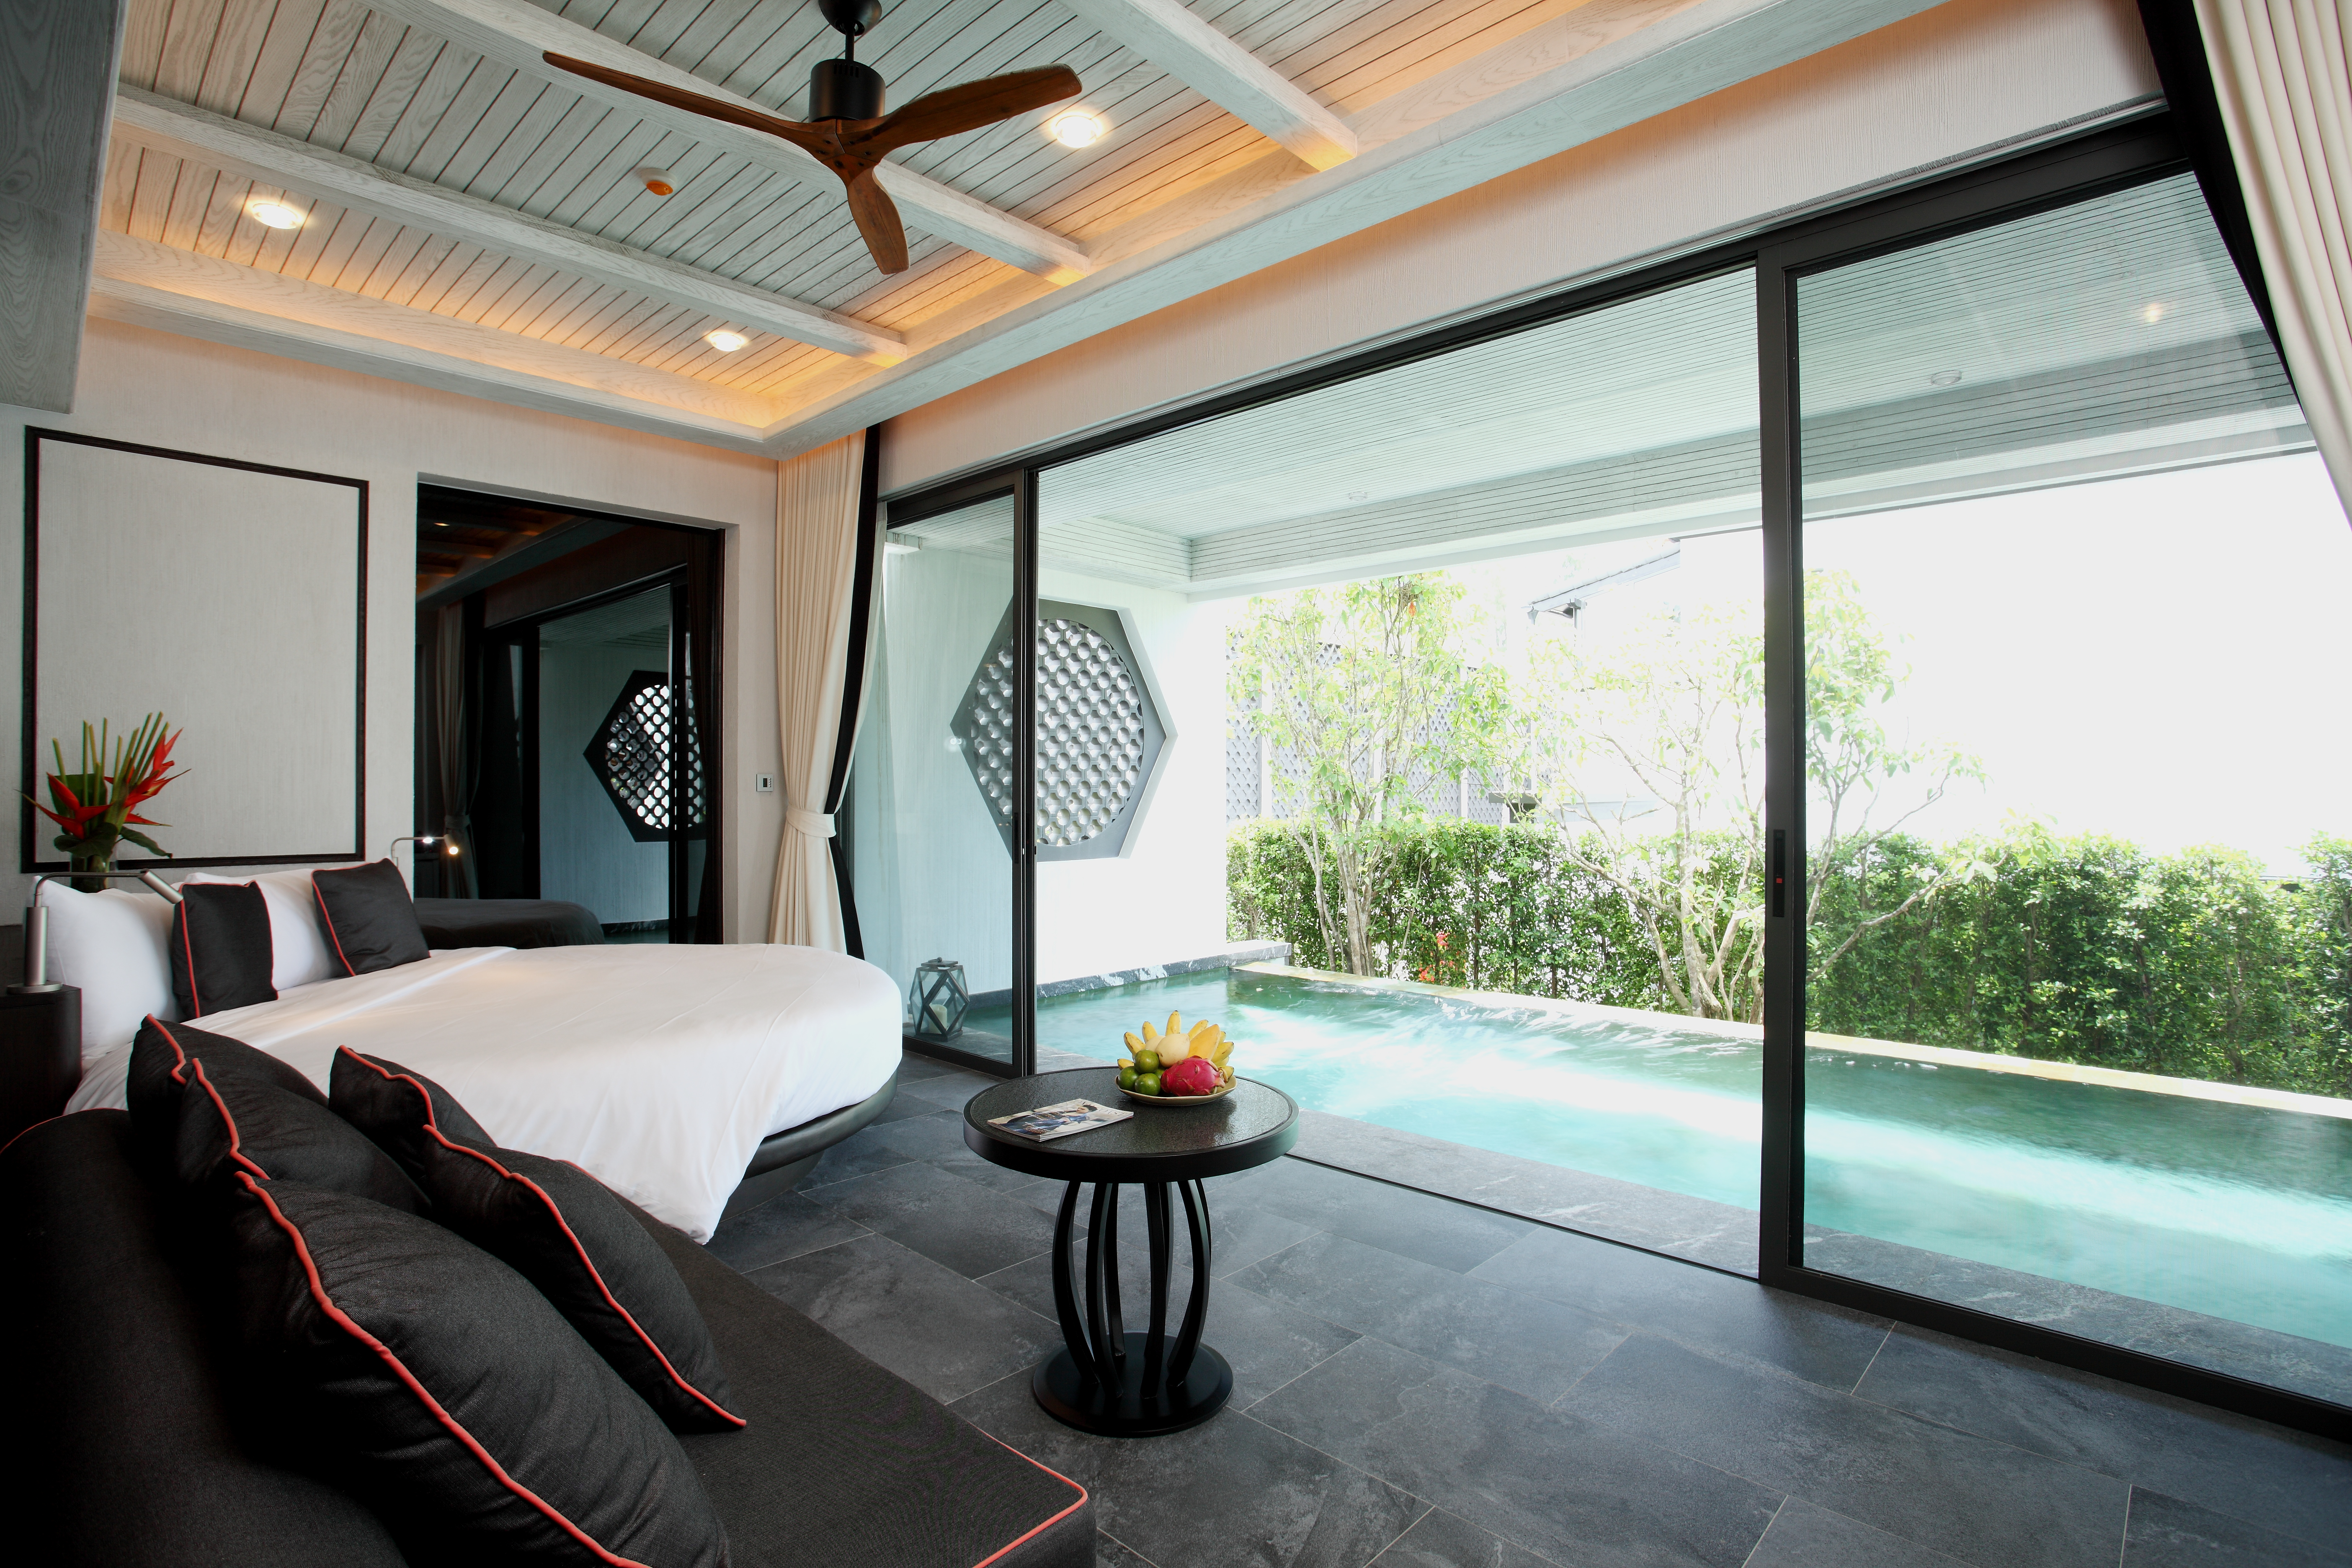 03. Baba Pool Suite